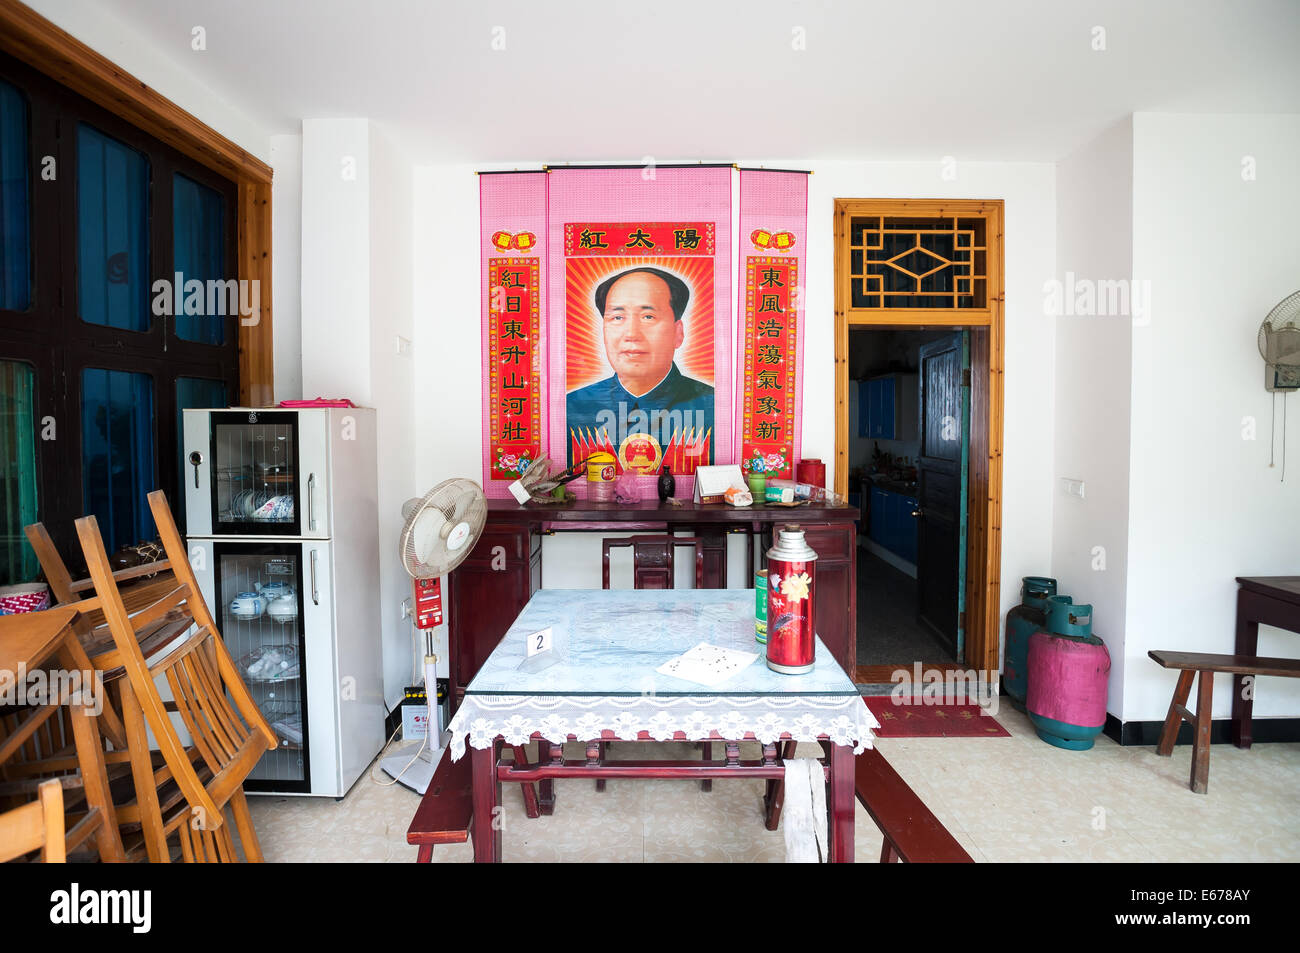 Chairman Mao poster inside a Chinese dining room - Stock Image